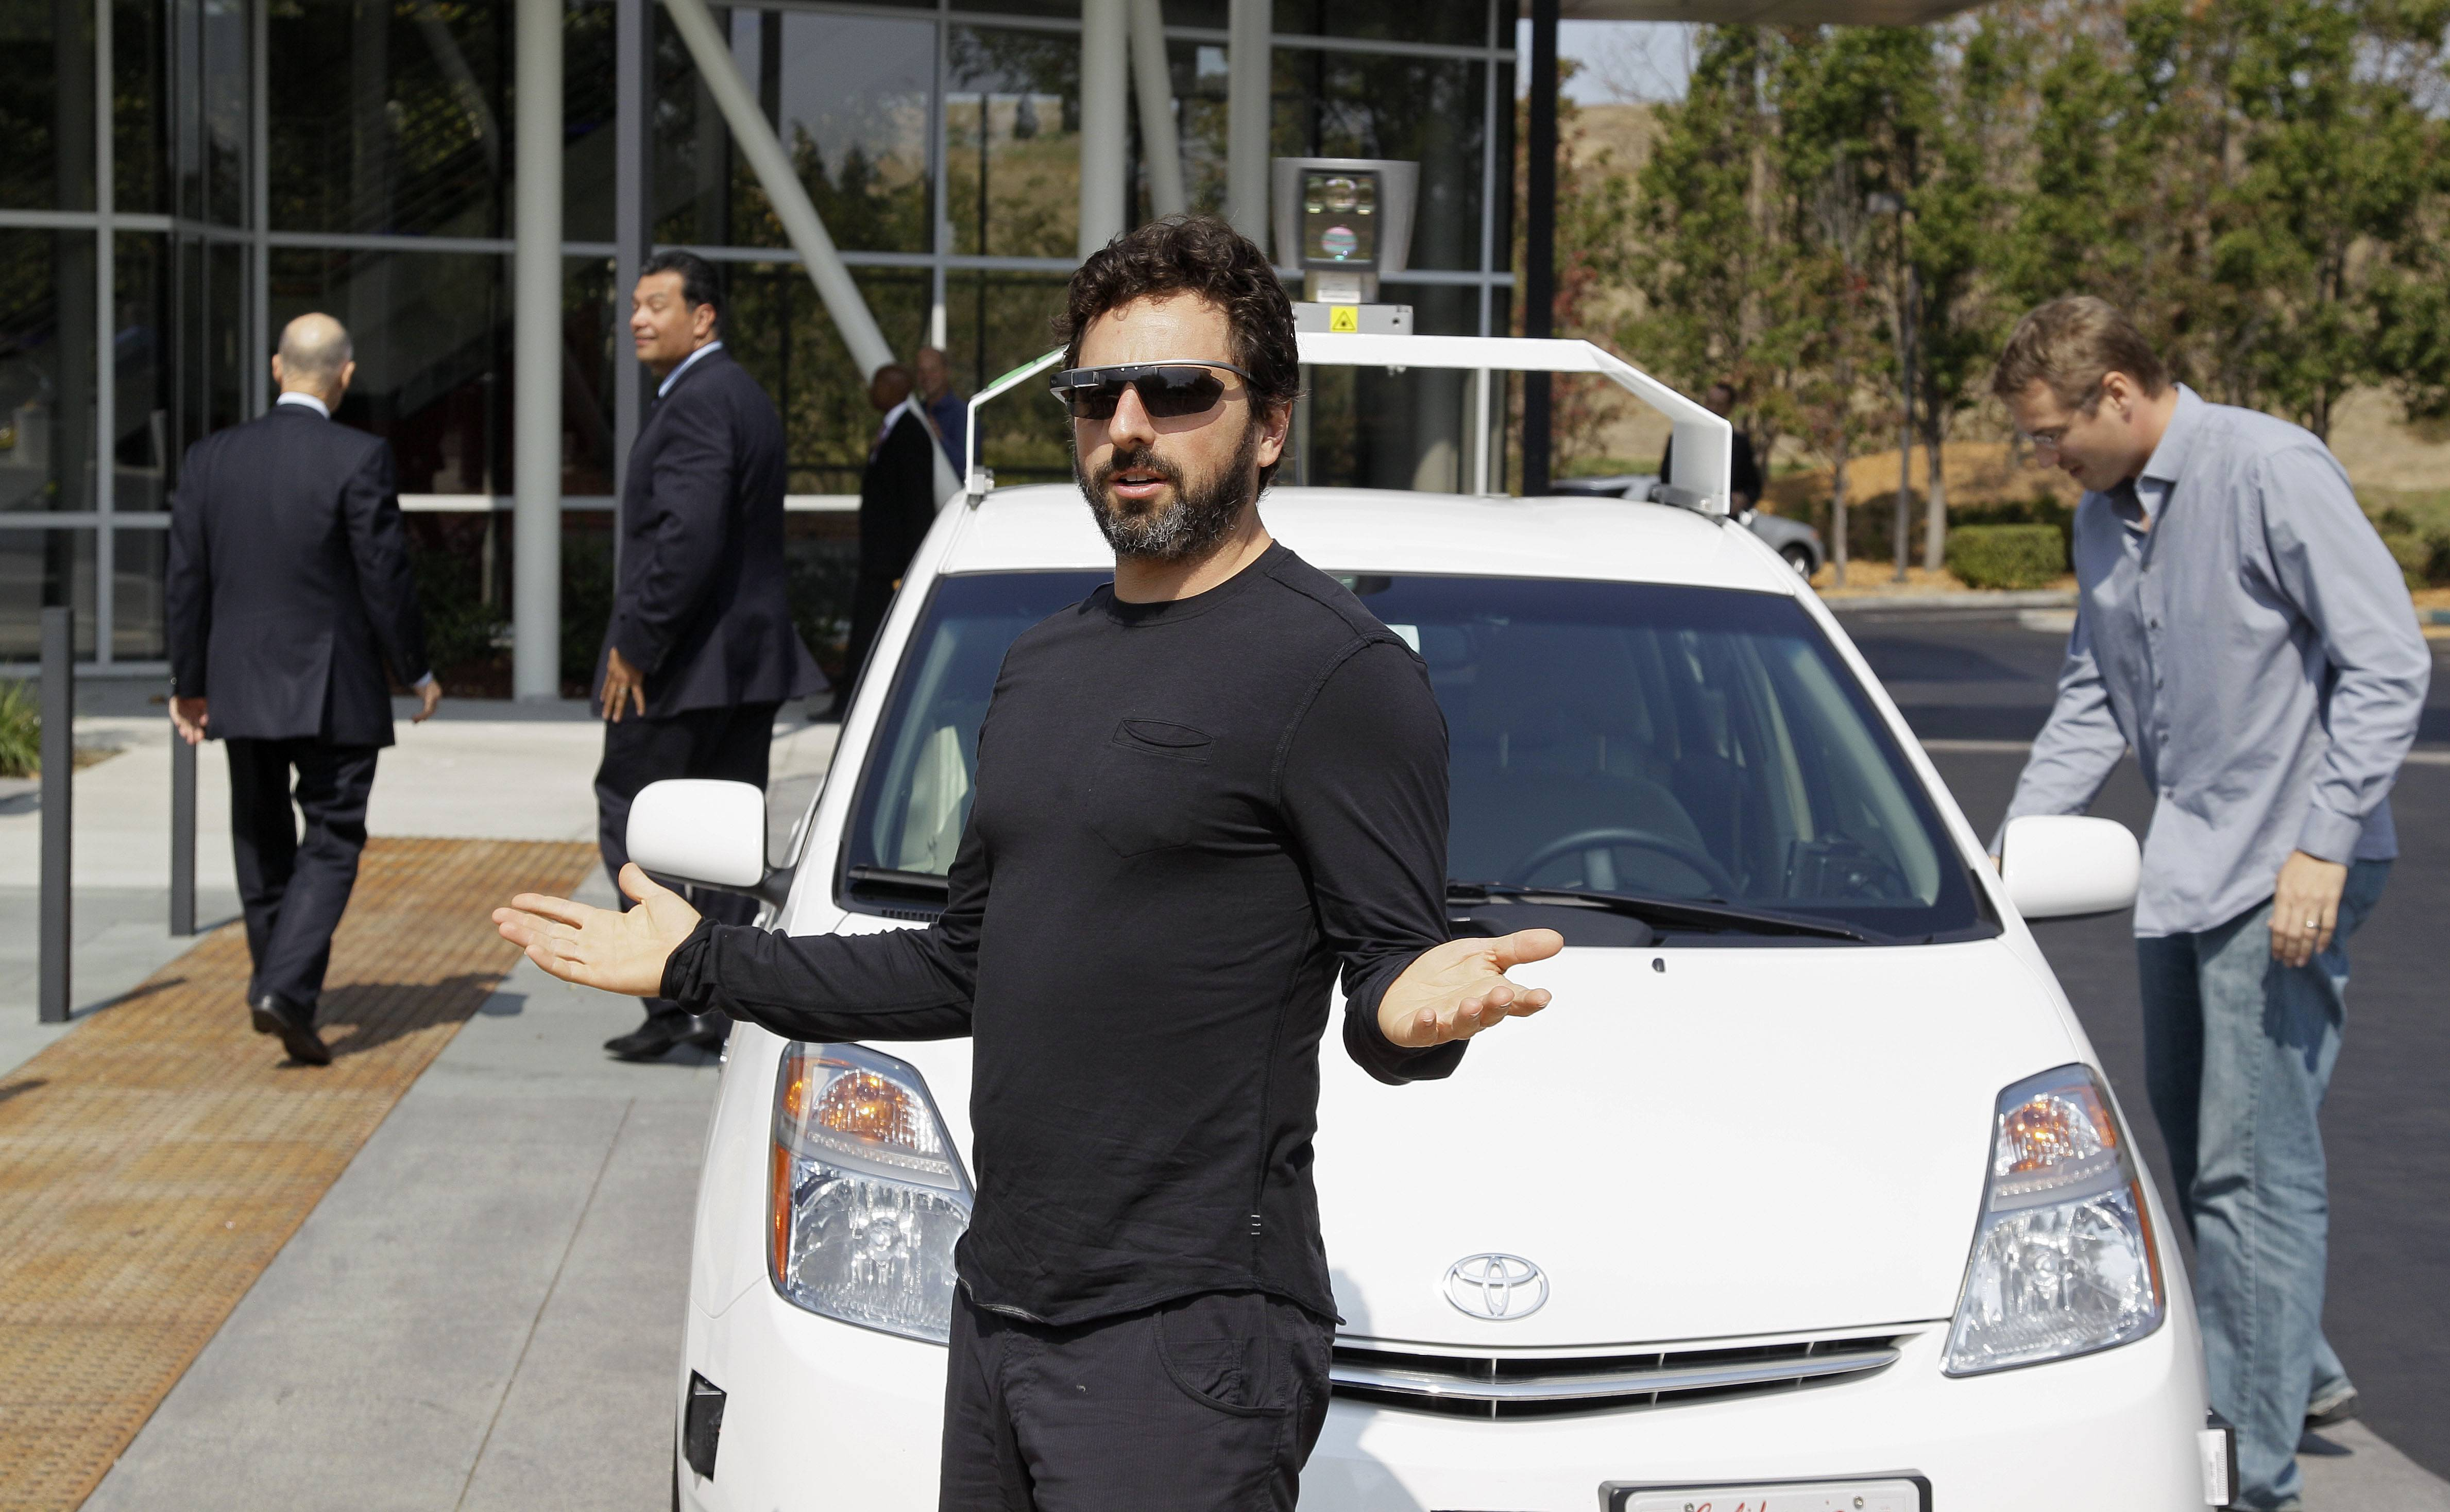 Google co-founder Sergey Brin gestures after riding in a driverless car with officials. The prospect of cars being controlled by online navigation systems is troubling to regulators and law enforcers.